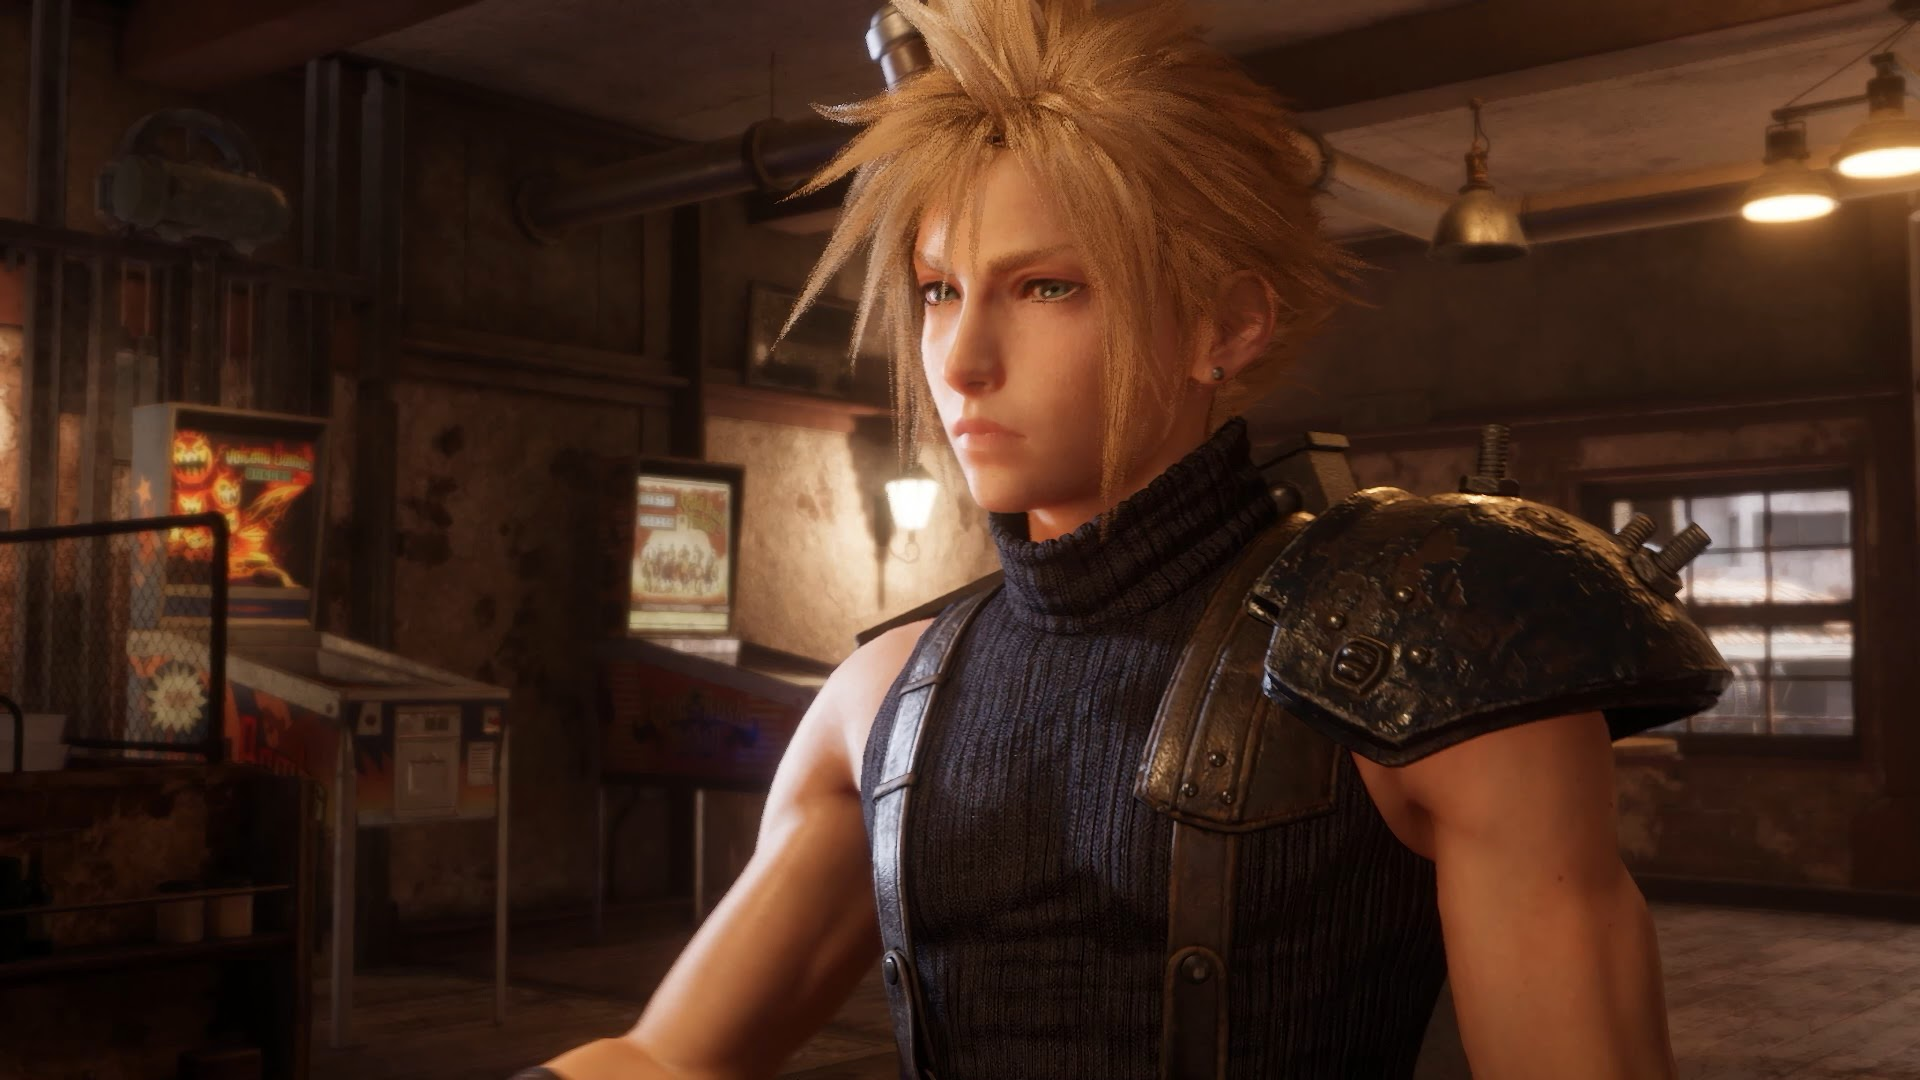 Final Fantasy 7 Remake Honey Bee Cross-Dress Event Will be